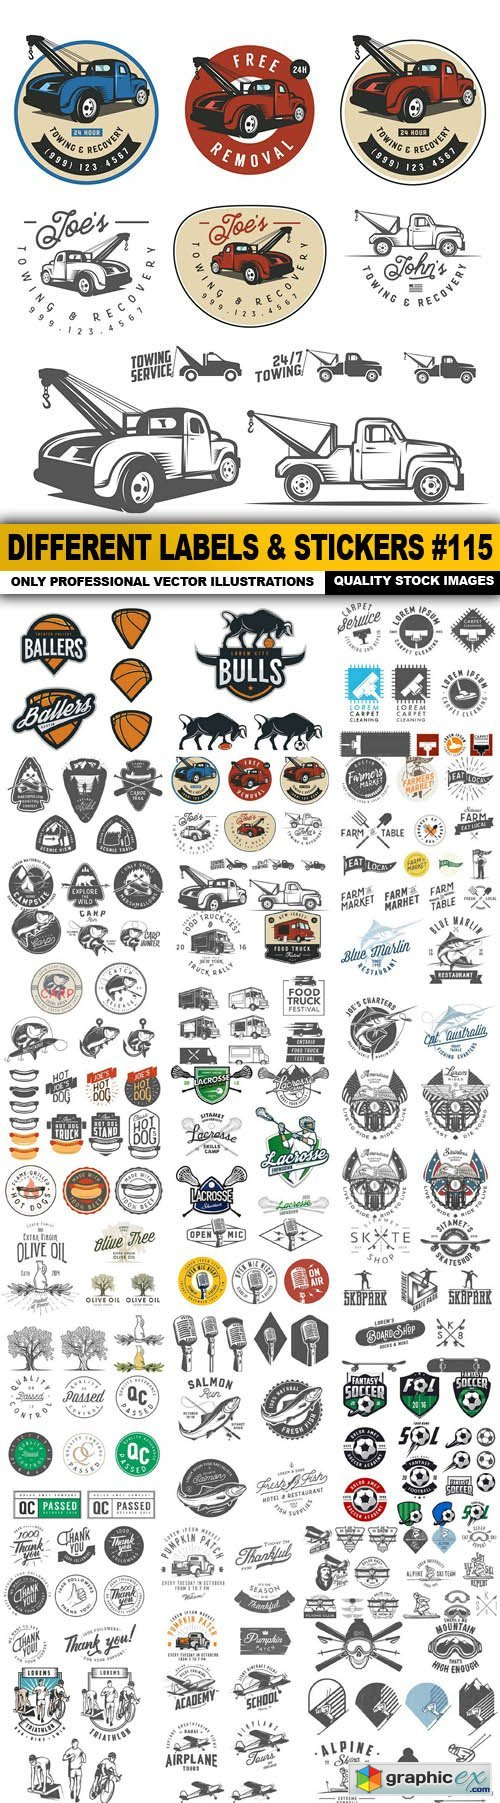 Different Labels & Stickers #115 - 25 Vector